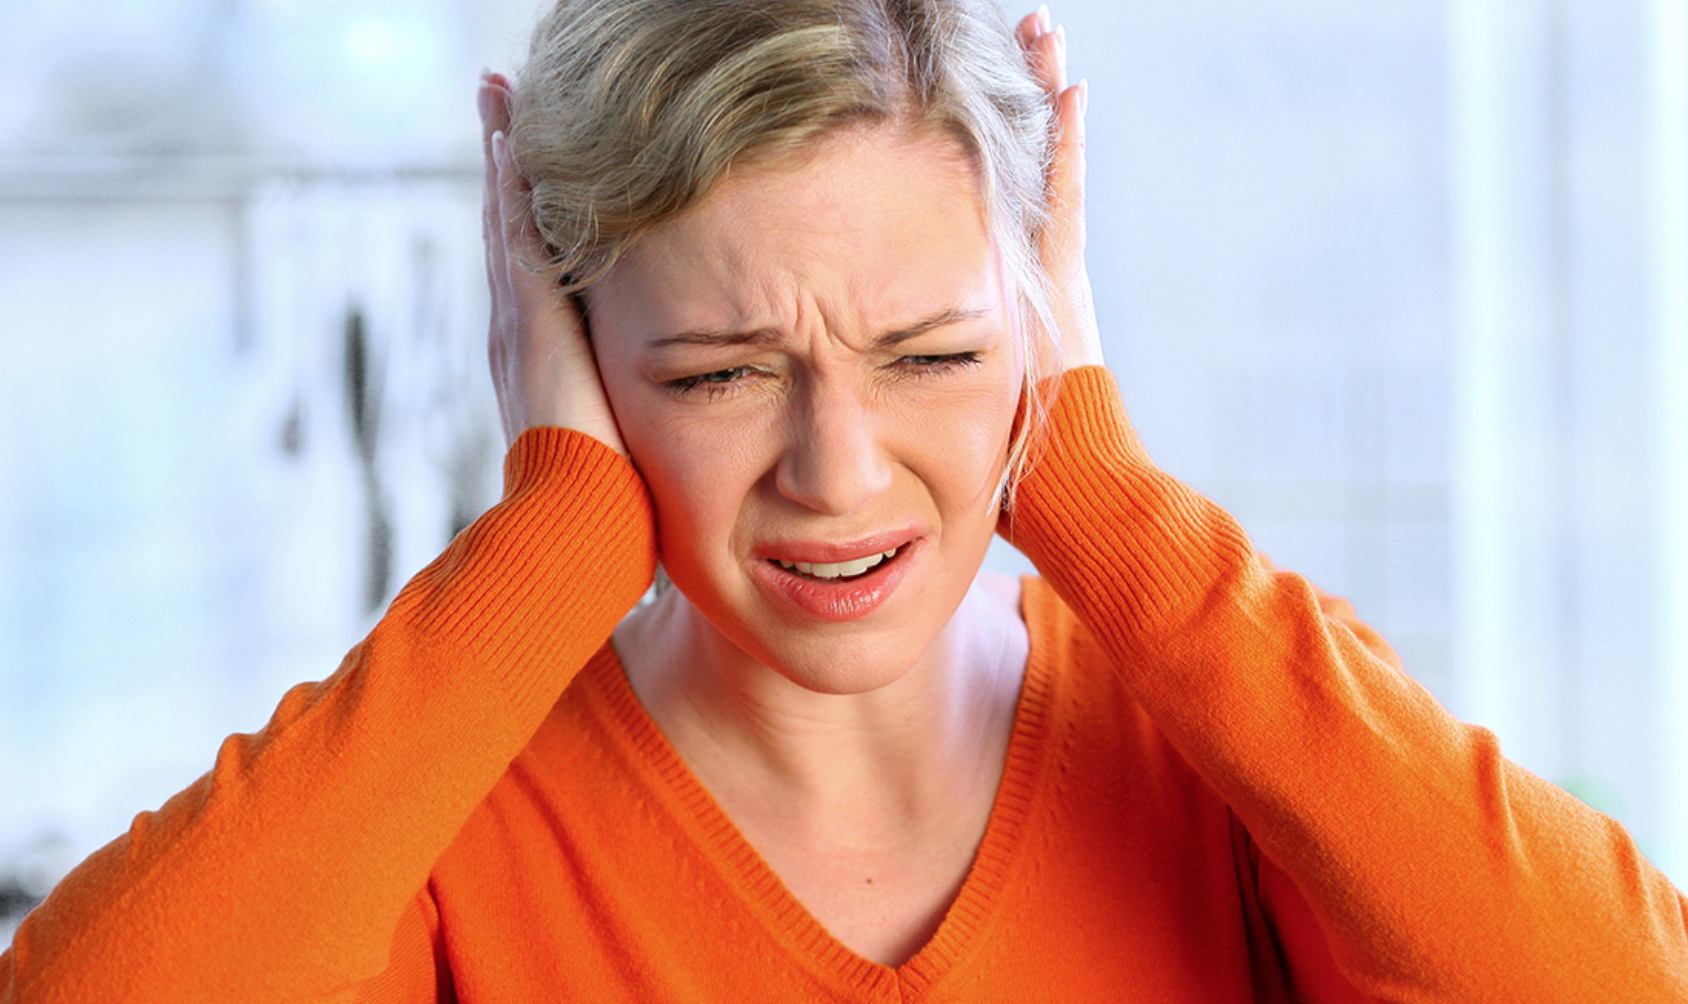 Tinnitus how to stop ringing in ears